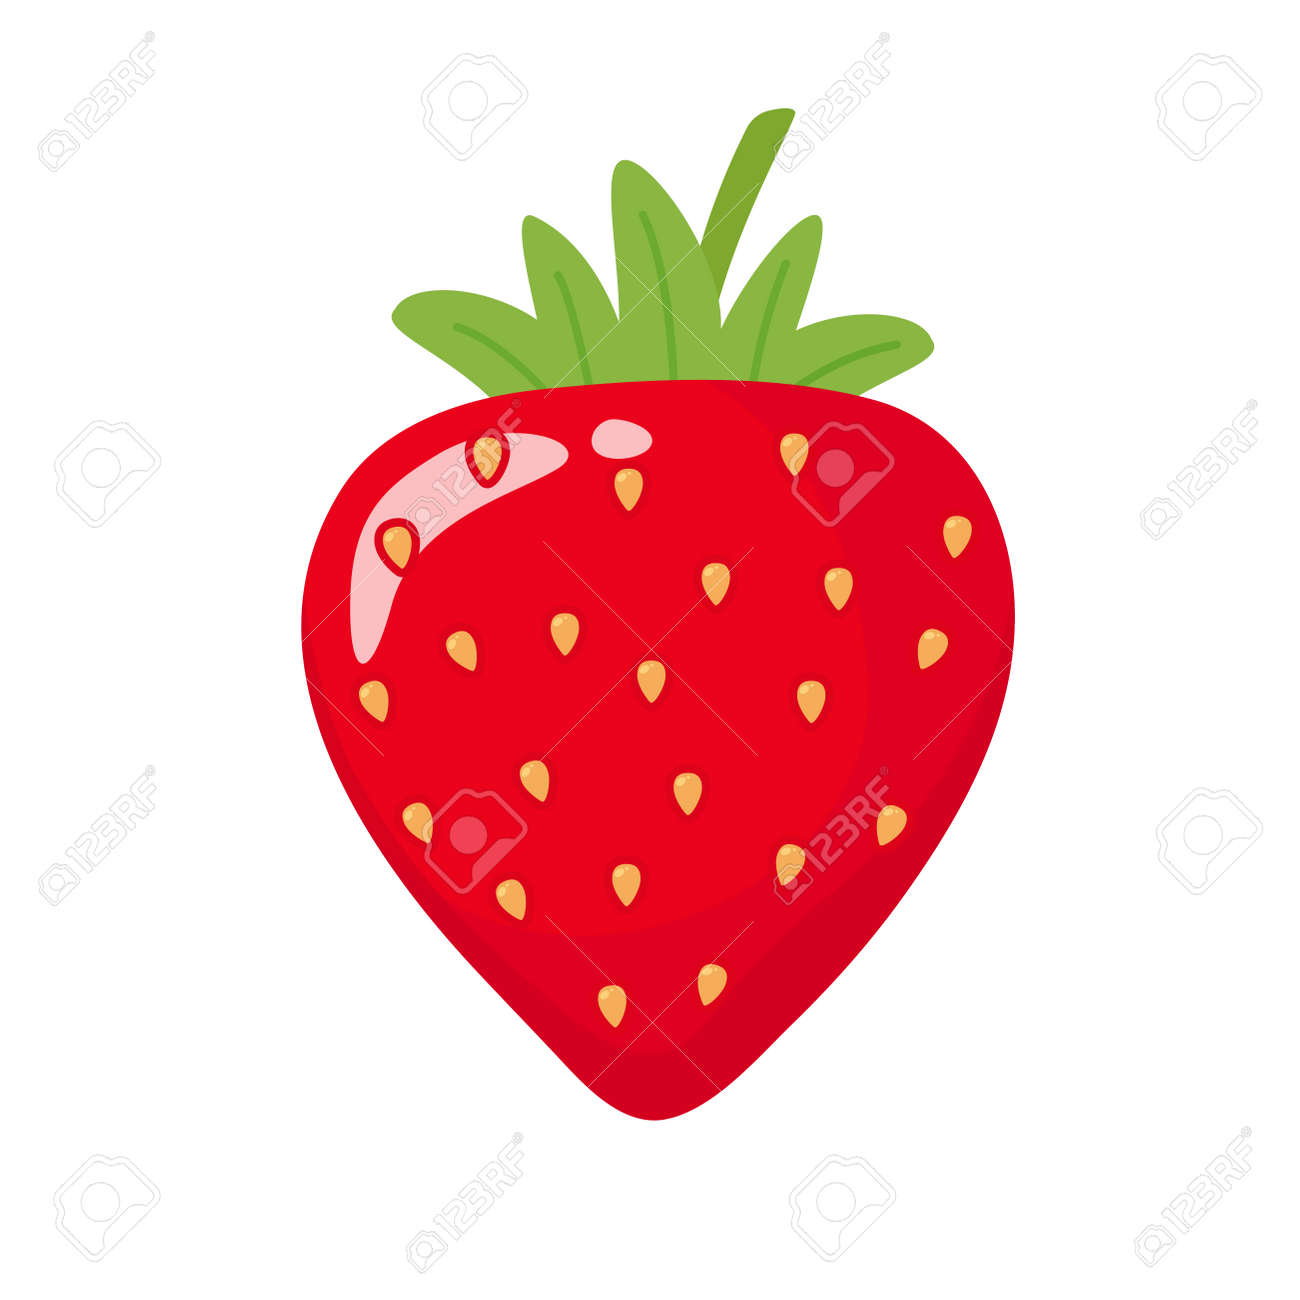 Vector cartoon strawberry red ball With green leaves on top Isolated on white background Health care concept - 158274662